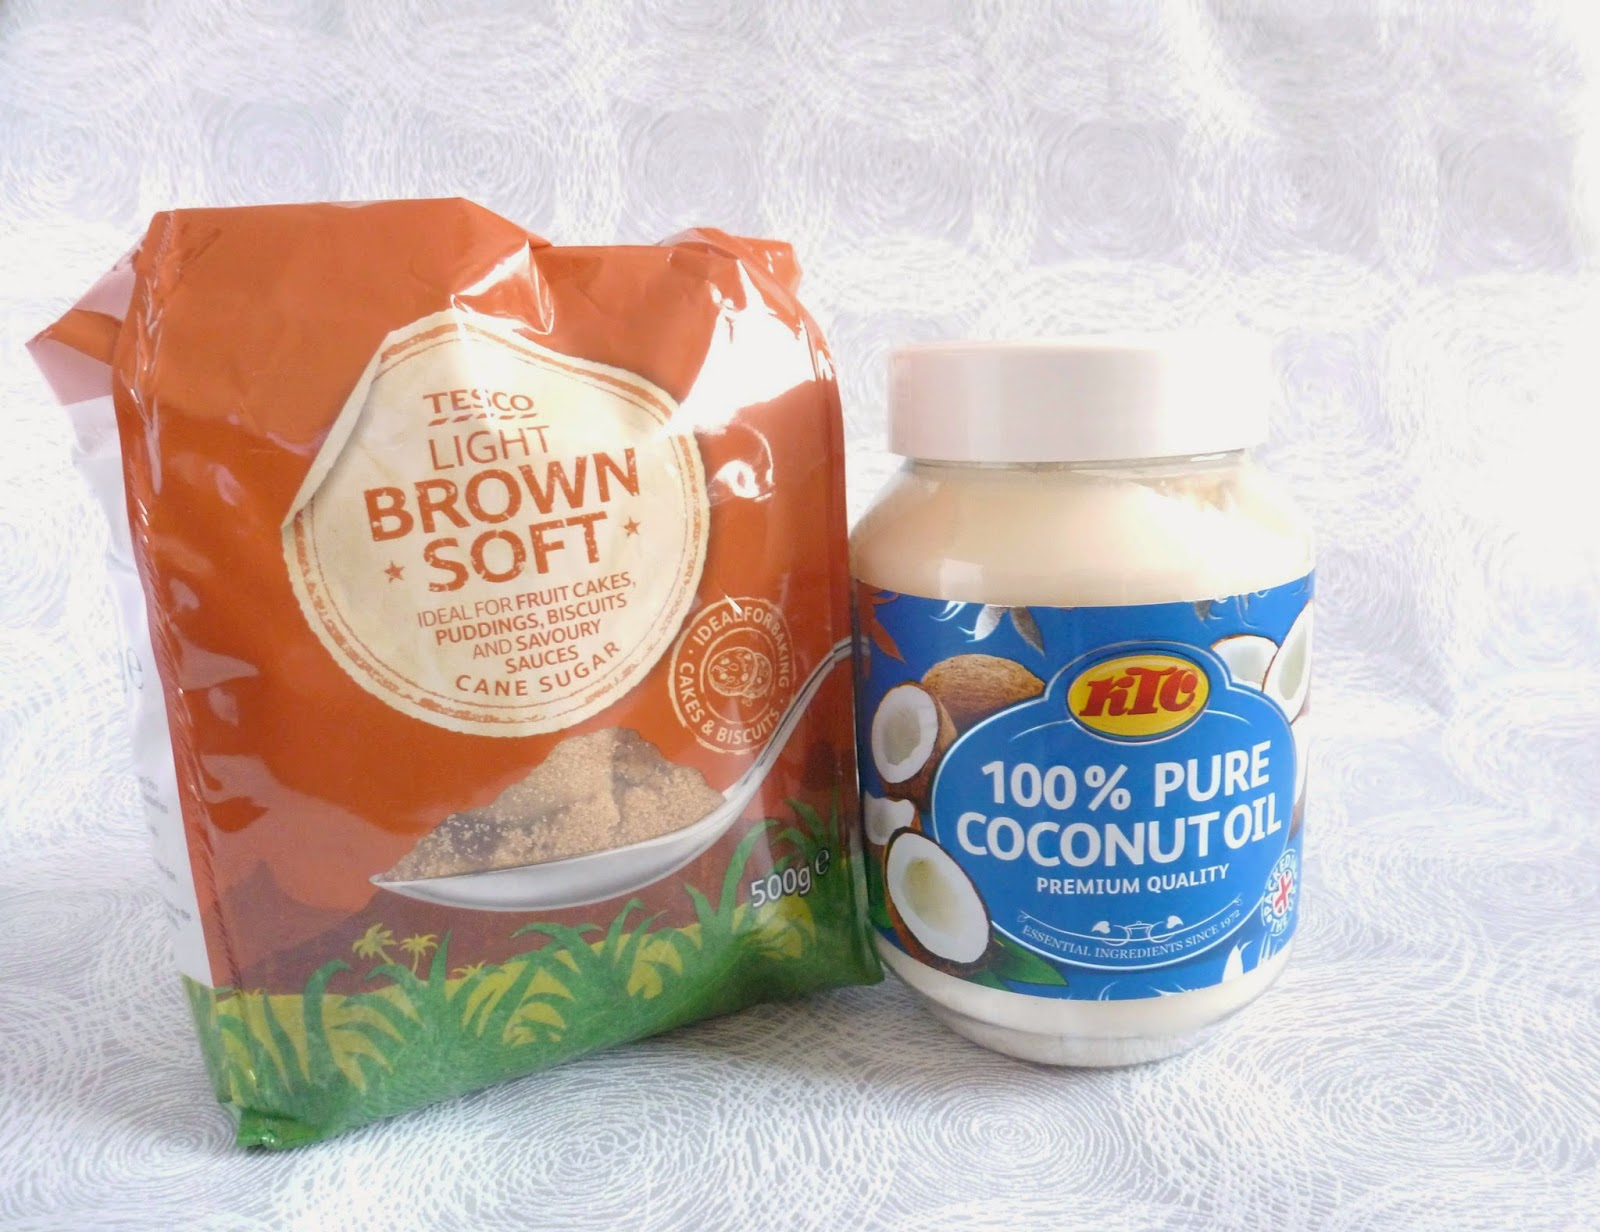 Tesco's brown sugar and coconut oil - to make a homemade scrub